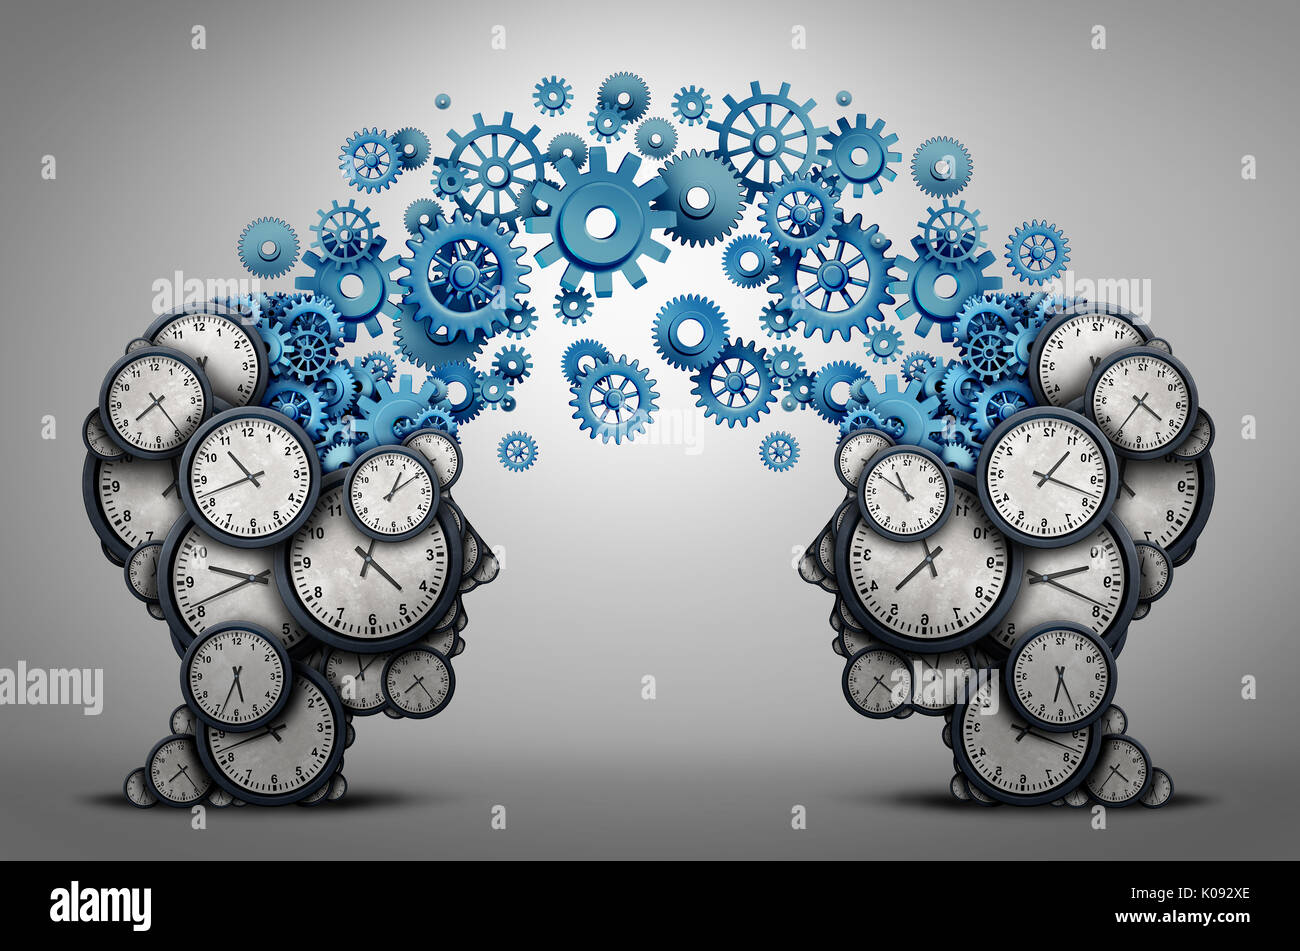 Business time planning partnership as two people heads made of clock cog and gear objects linked together as an organizing a meeting. - Stock Image